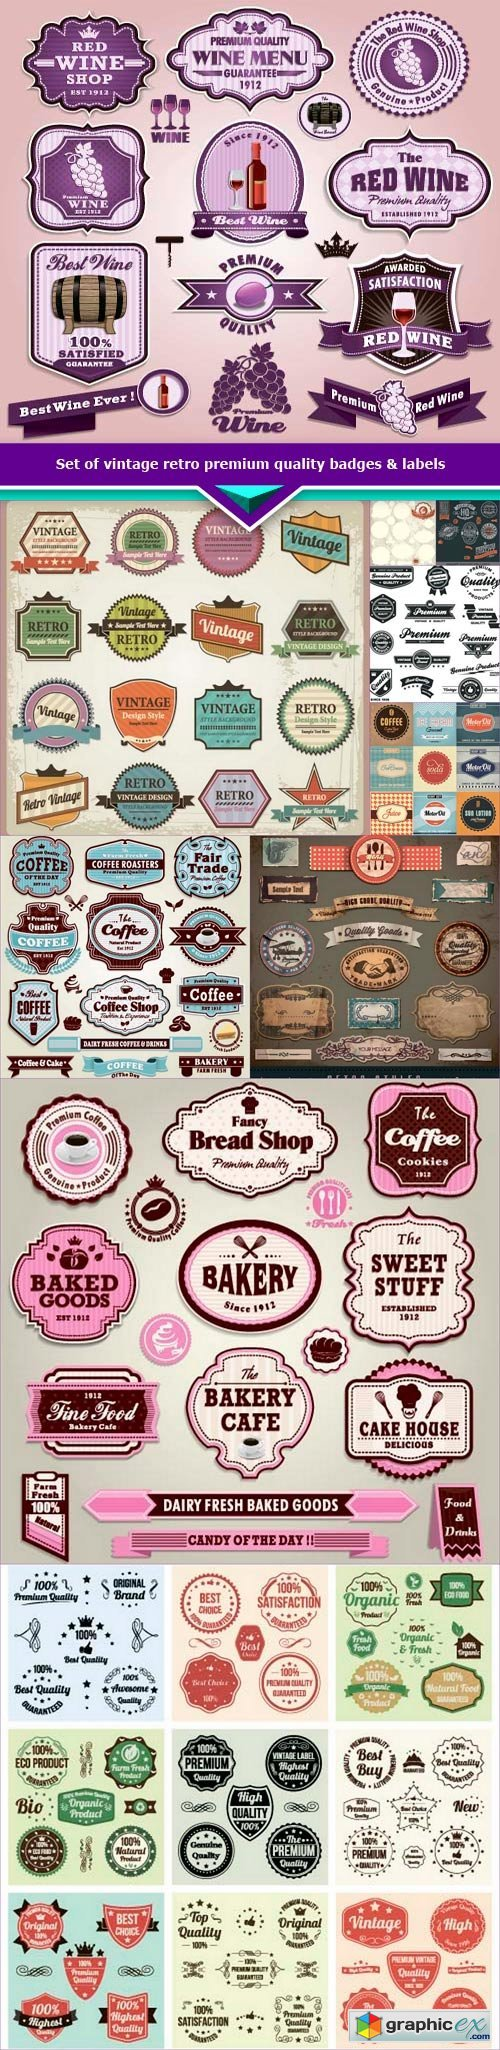 Set of vintage retro premium quality badges & labels 10x EPS